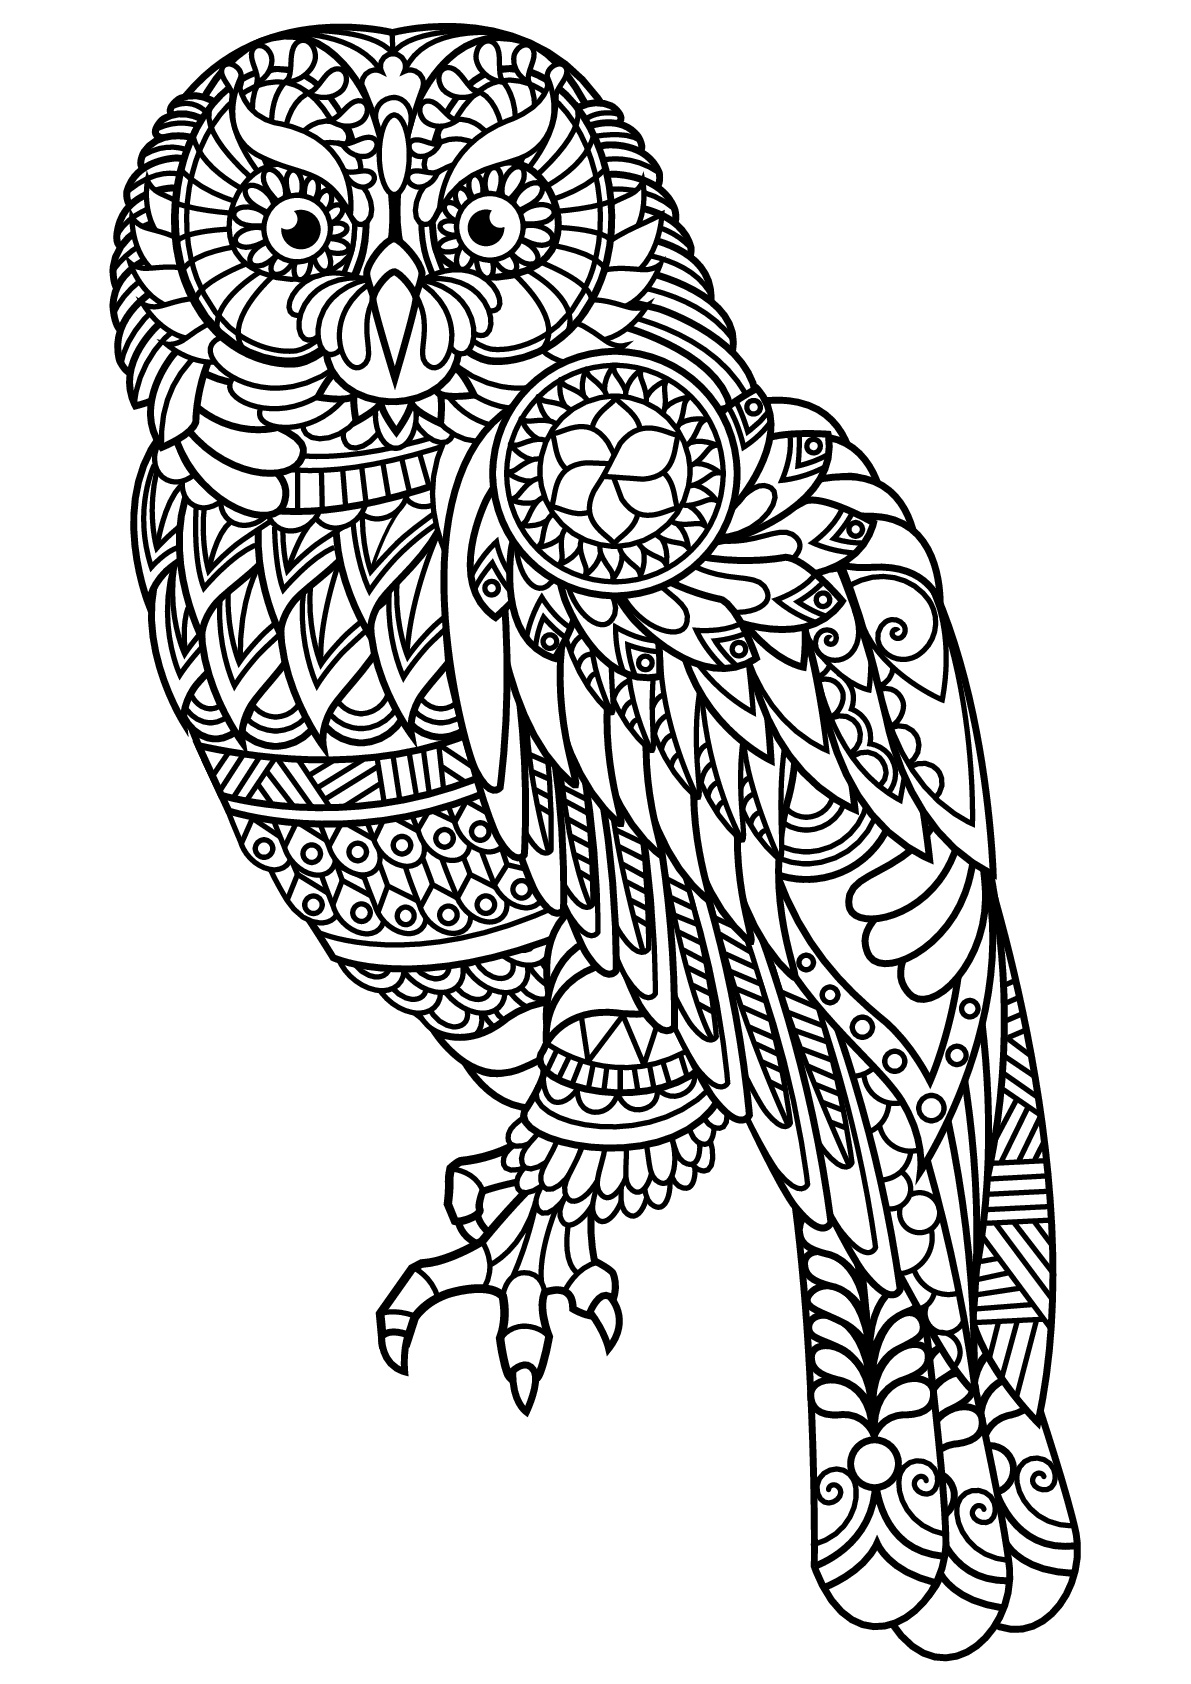 free printable animal colouring pages cartoon animal coloring pages to download and print for free colouring pages animal free printable